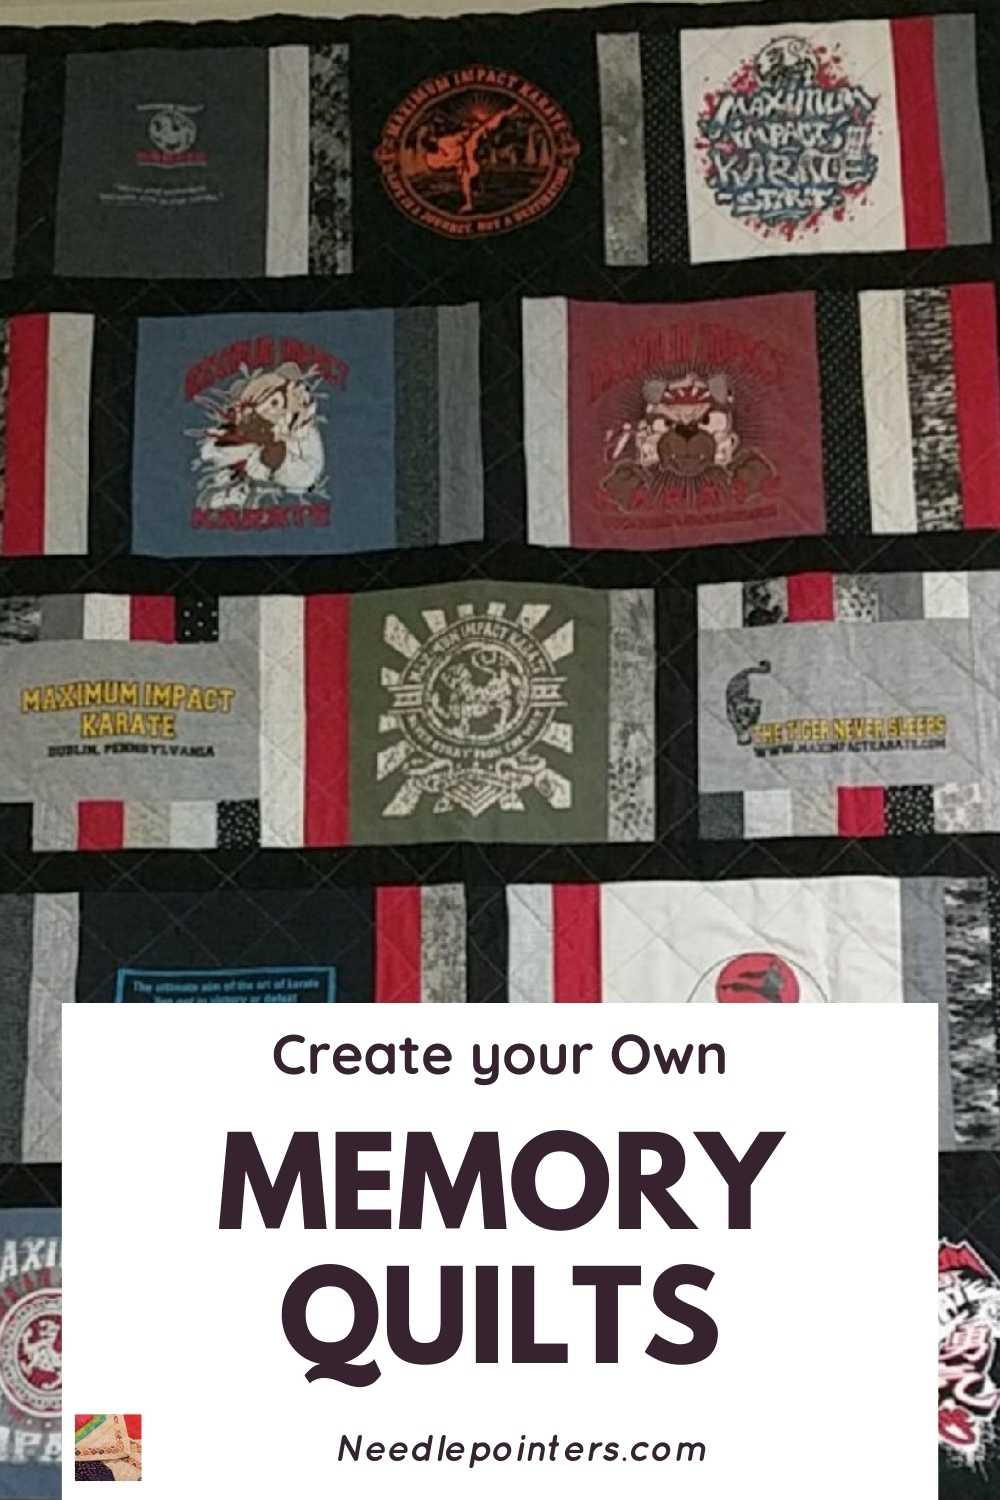 Memory Quilts: Wrap Up In A Warm Blanket of Memories